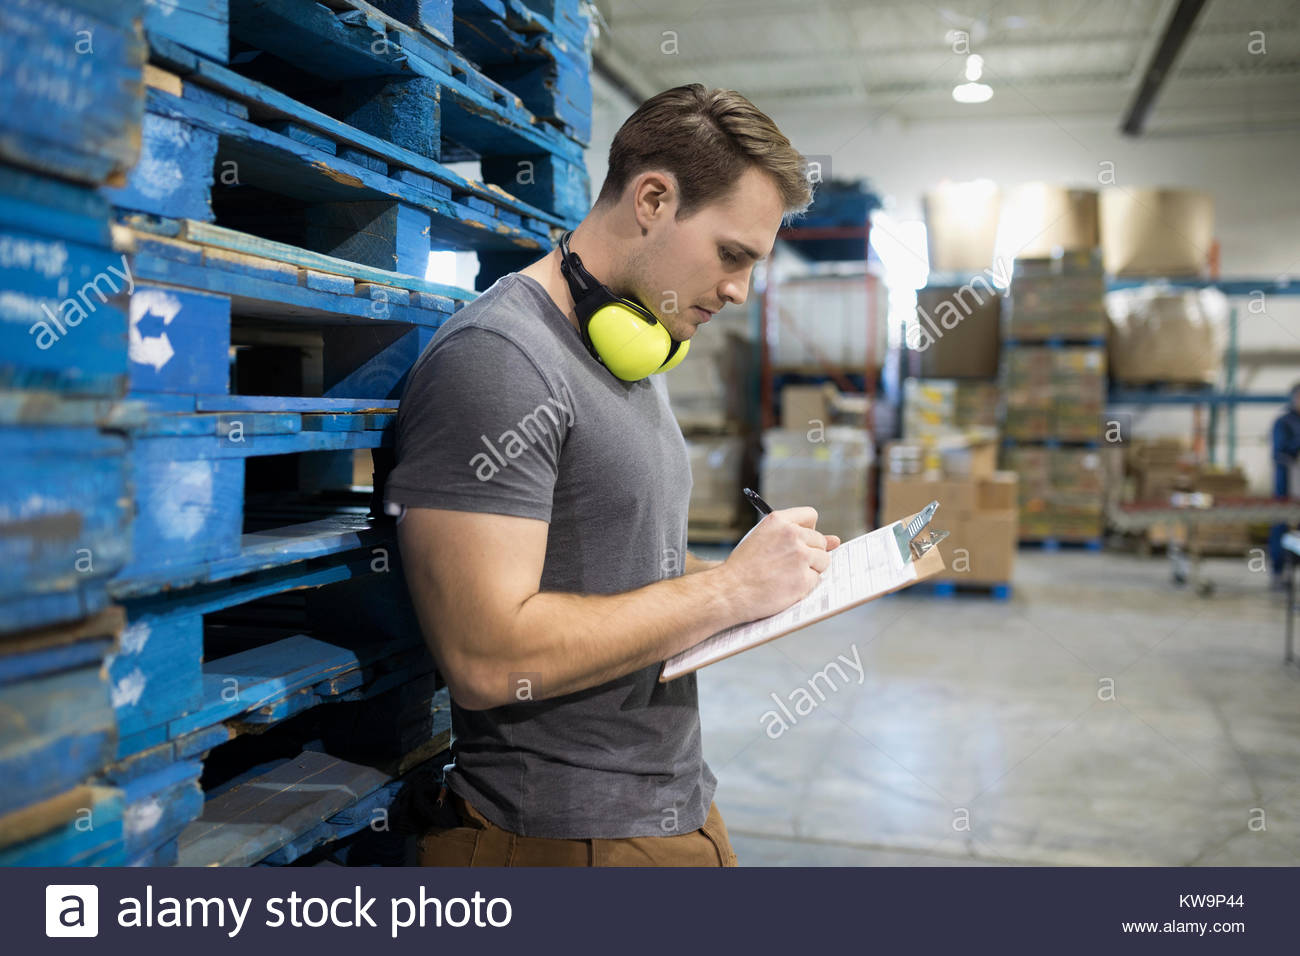 Male worker with clipboard in distribution warehouse - Stock Image